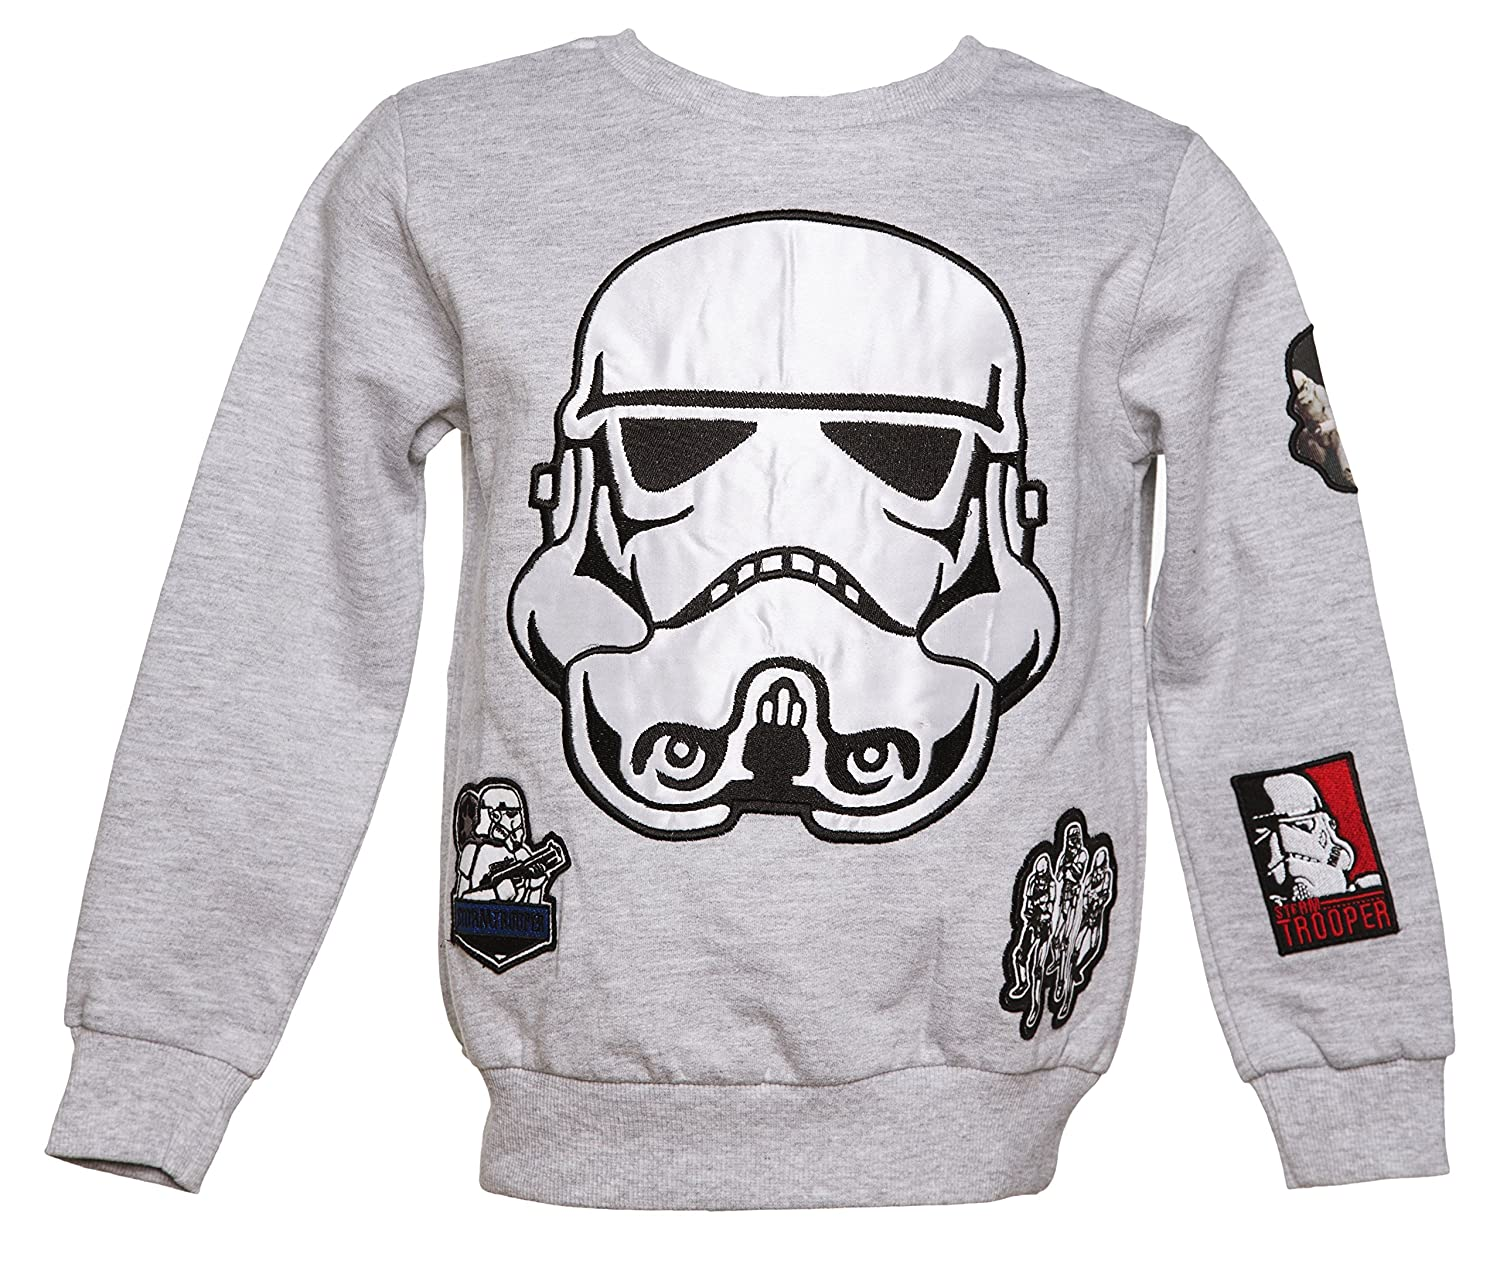 Kids Grey Marl Star Wars Stormtrooper Applique Badges Sweater from Fabric Flavou